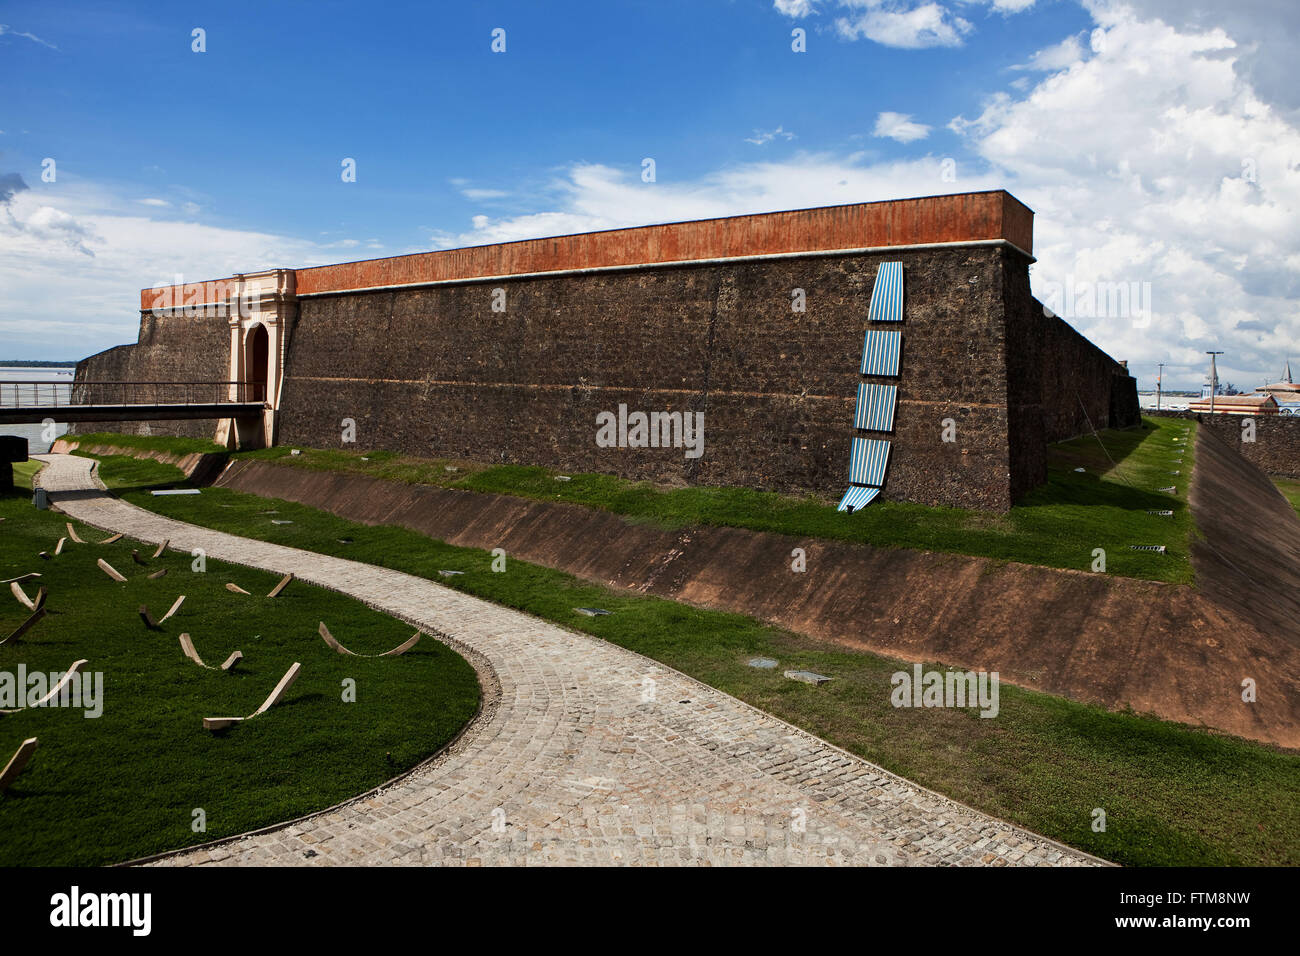 Fort Crib or Castle Fort on the bank of the mouth of the Rio Guama - Bay of Guajara - Stock Image